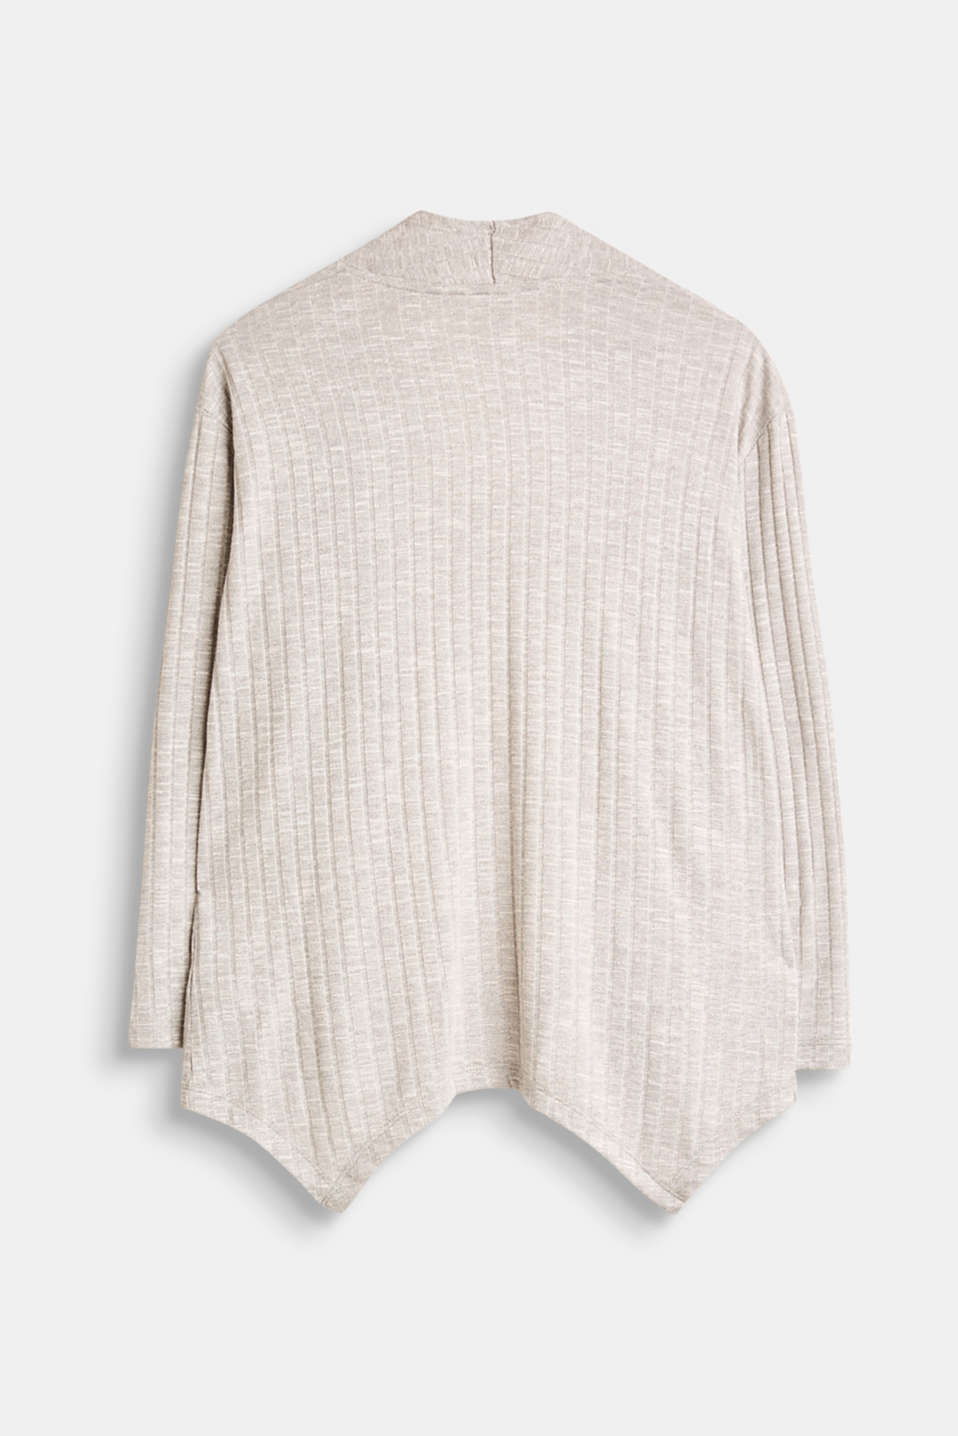 Jersey cardigan with a ribbed texture